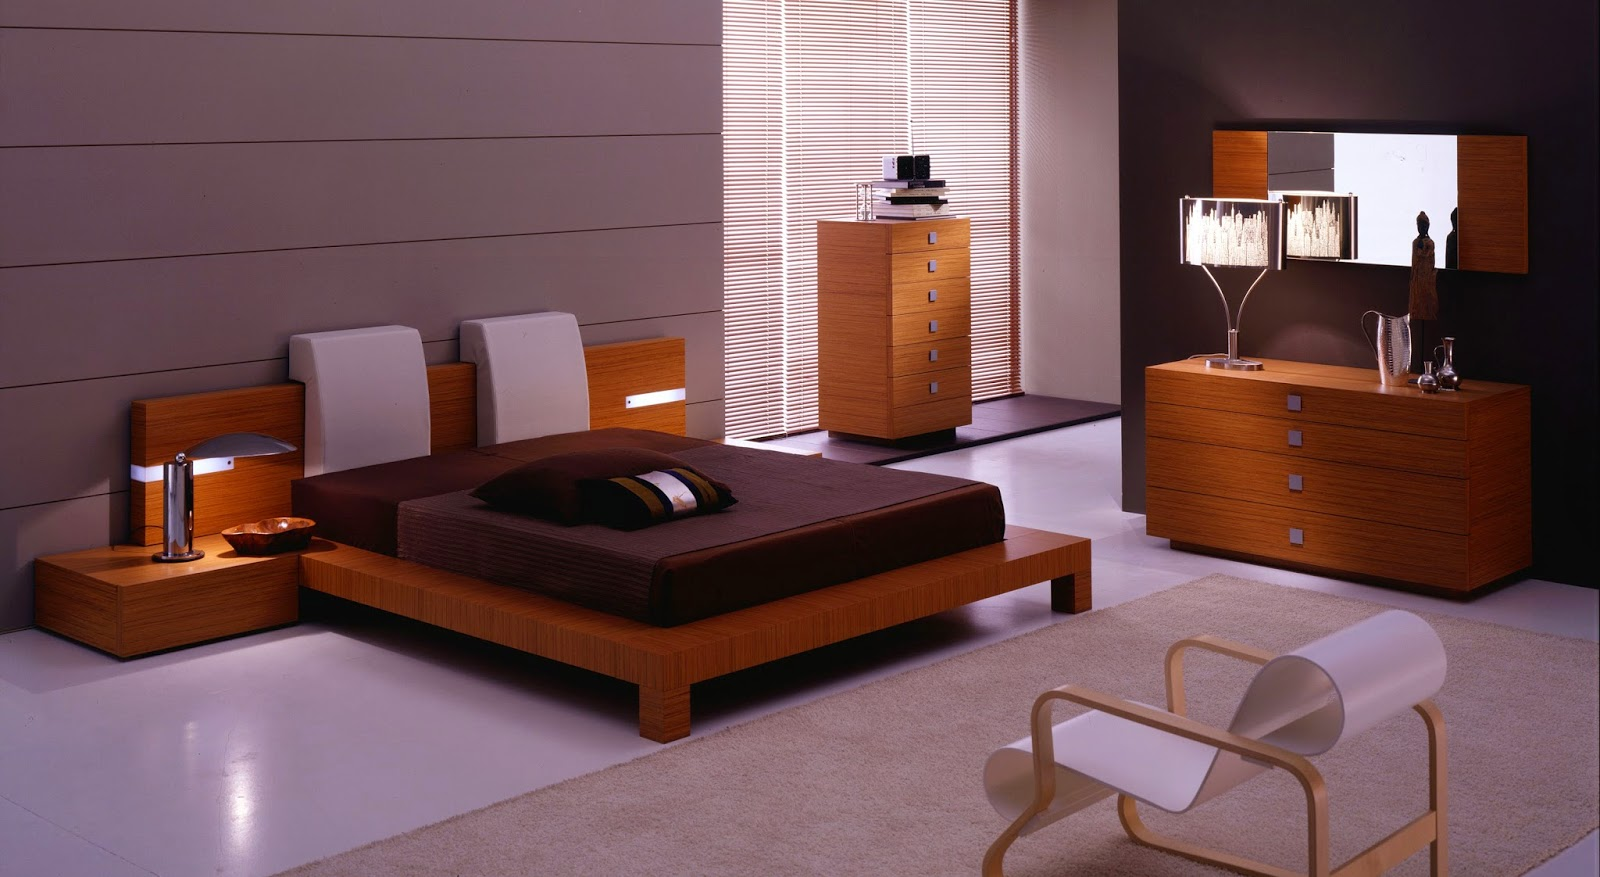 How to clean teak wood furniture furniture design ideas Luxury wood furniture